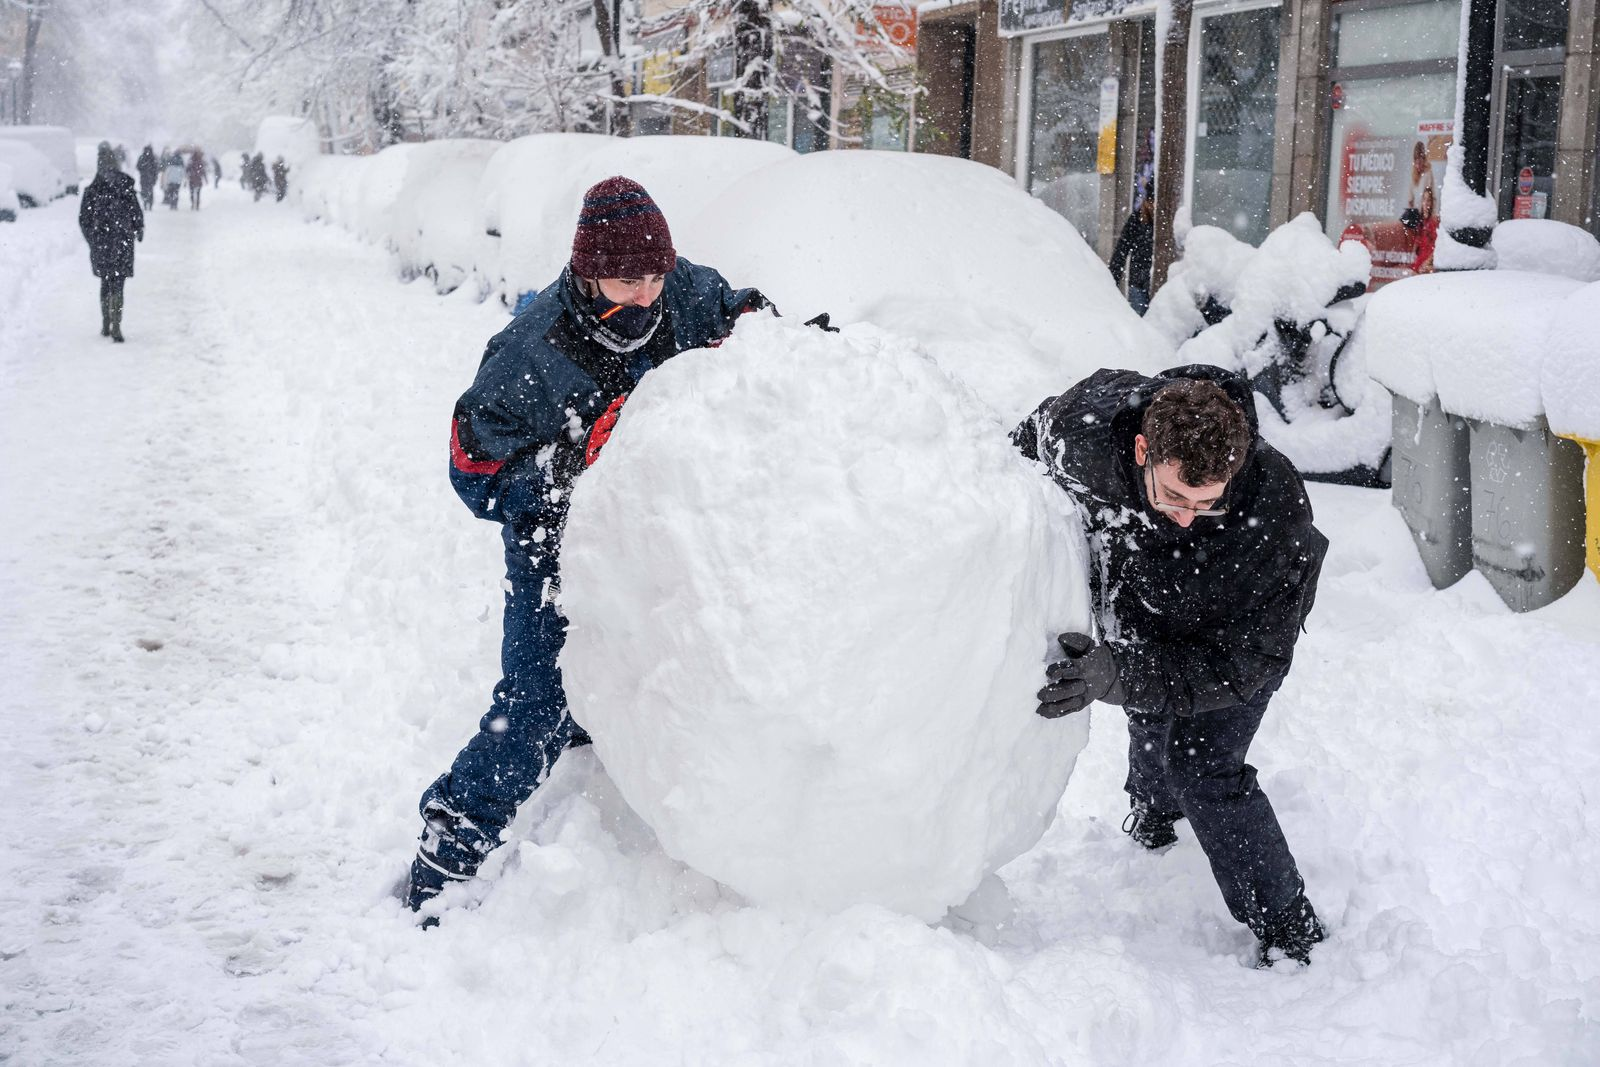 January 9, 2021, Madrid, Spain: Youth seen pushing a snowball in the streets of the Chamberi neighborhood, central Madr